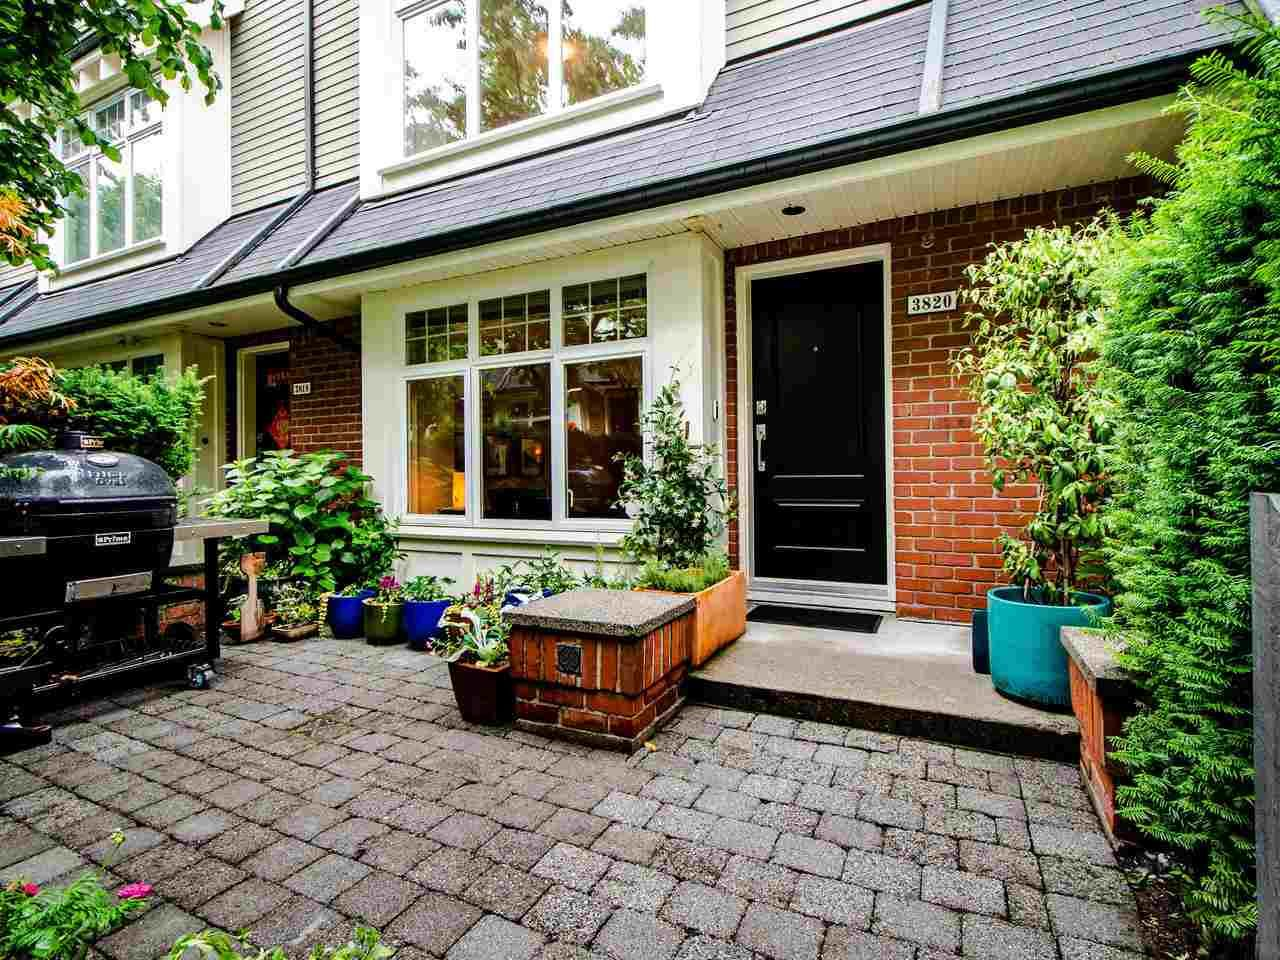 """Main Photo: 3820 WELWYN Street in Vancouver: Victoria VE Condo for sale in """"Stories"""" (Vancouver East)  : MLS®# R2472827"""